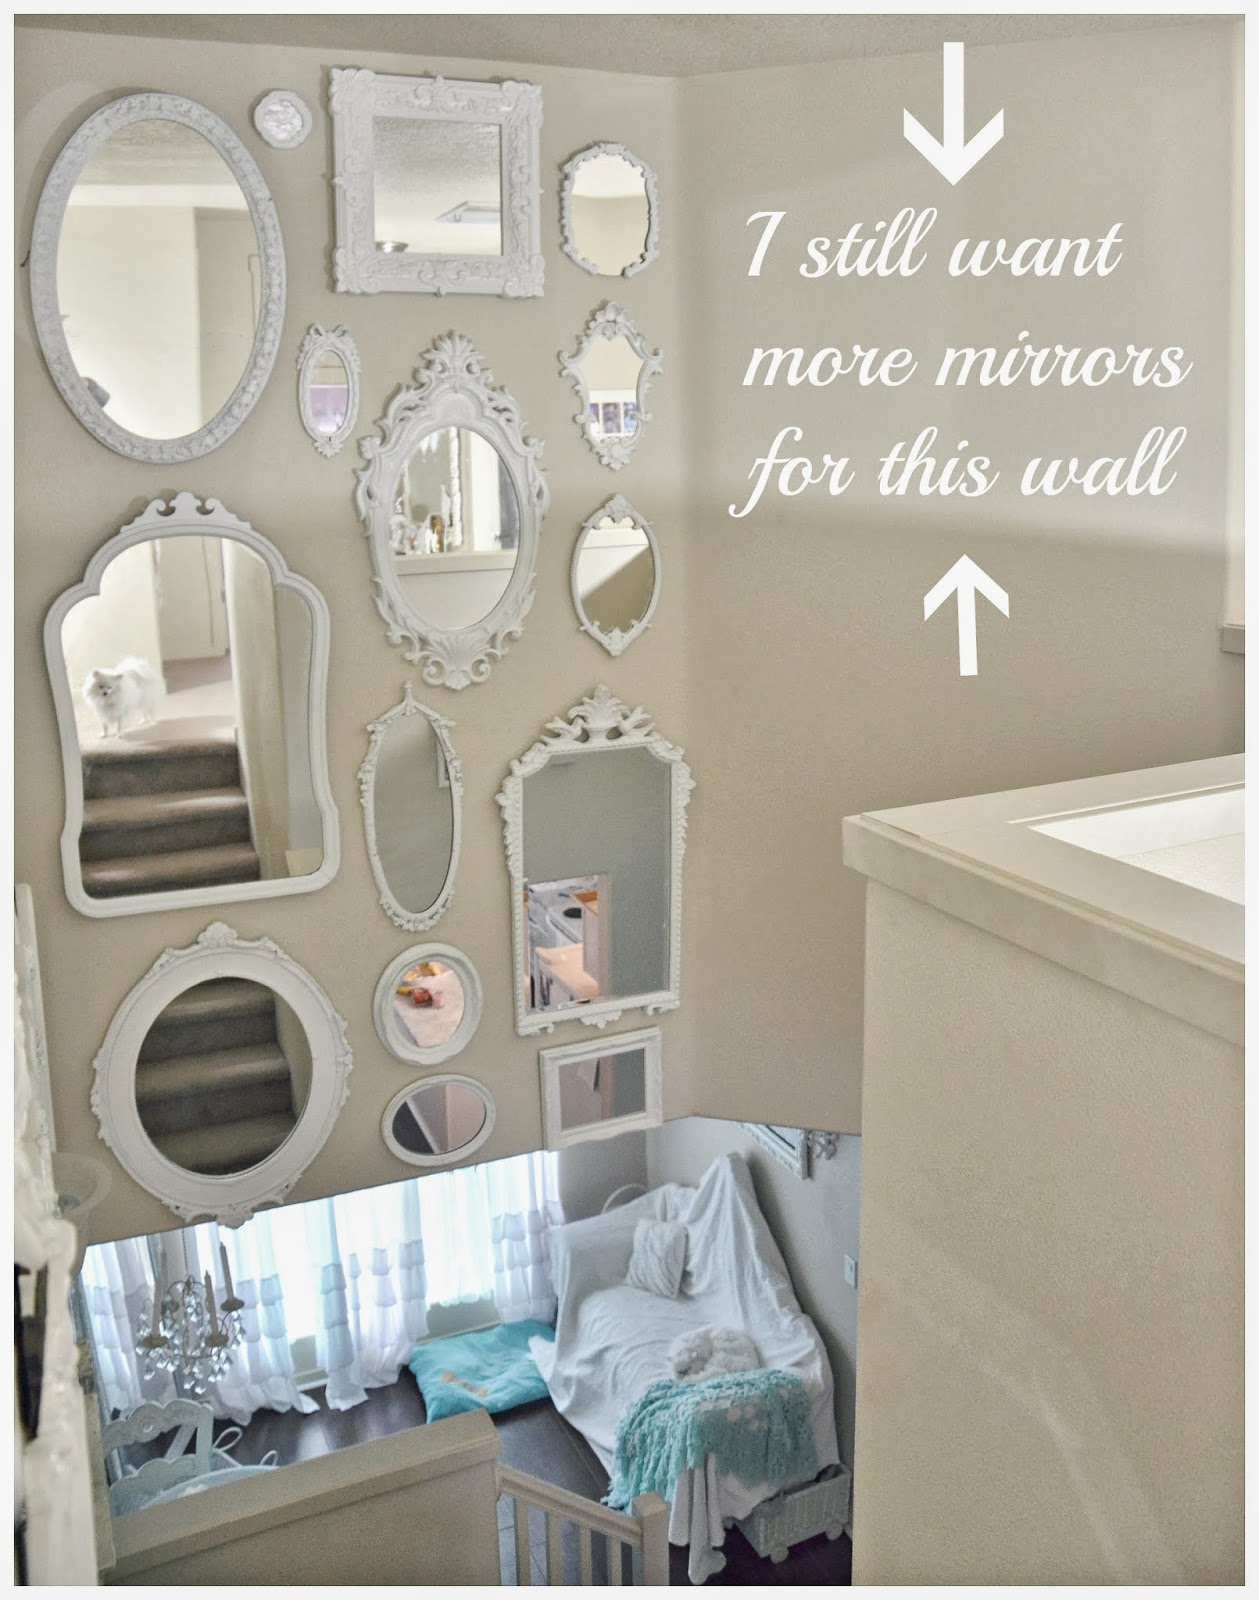 Not so shabby shabby chic mirror wall is almost complete on my last post i had posted this photo above saying i still needed more mirrors for this wall amipublicfo Image collections